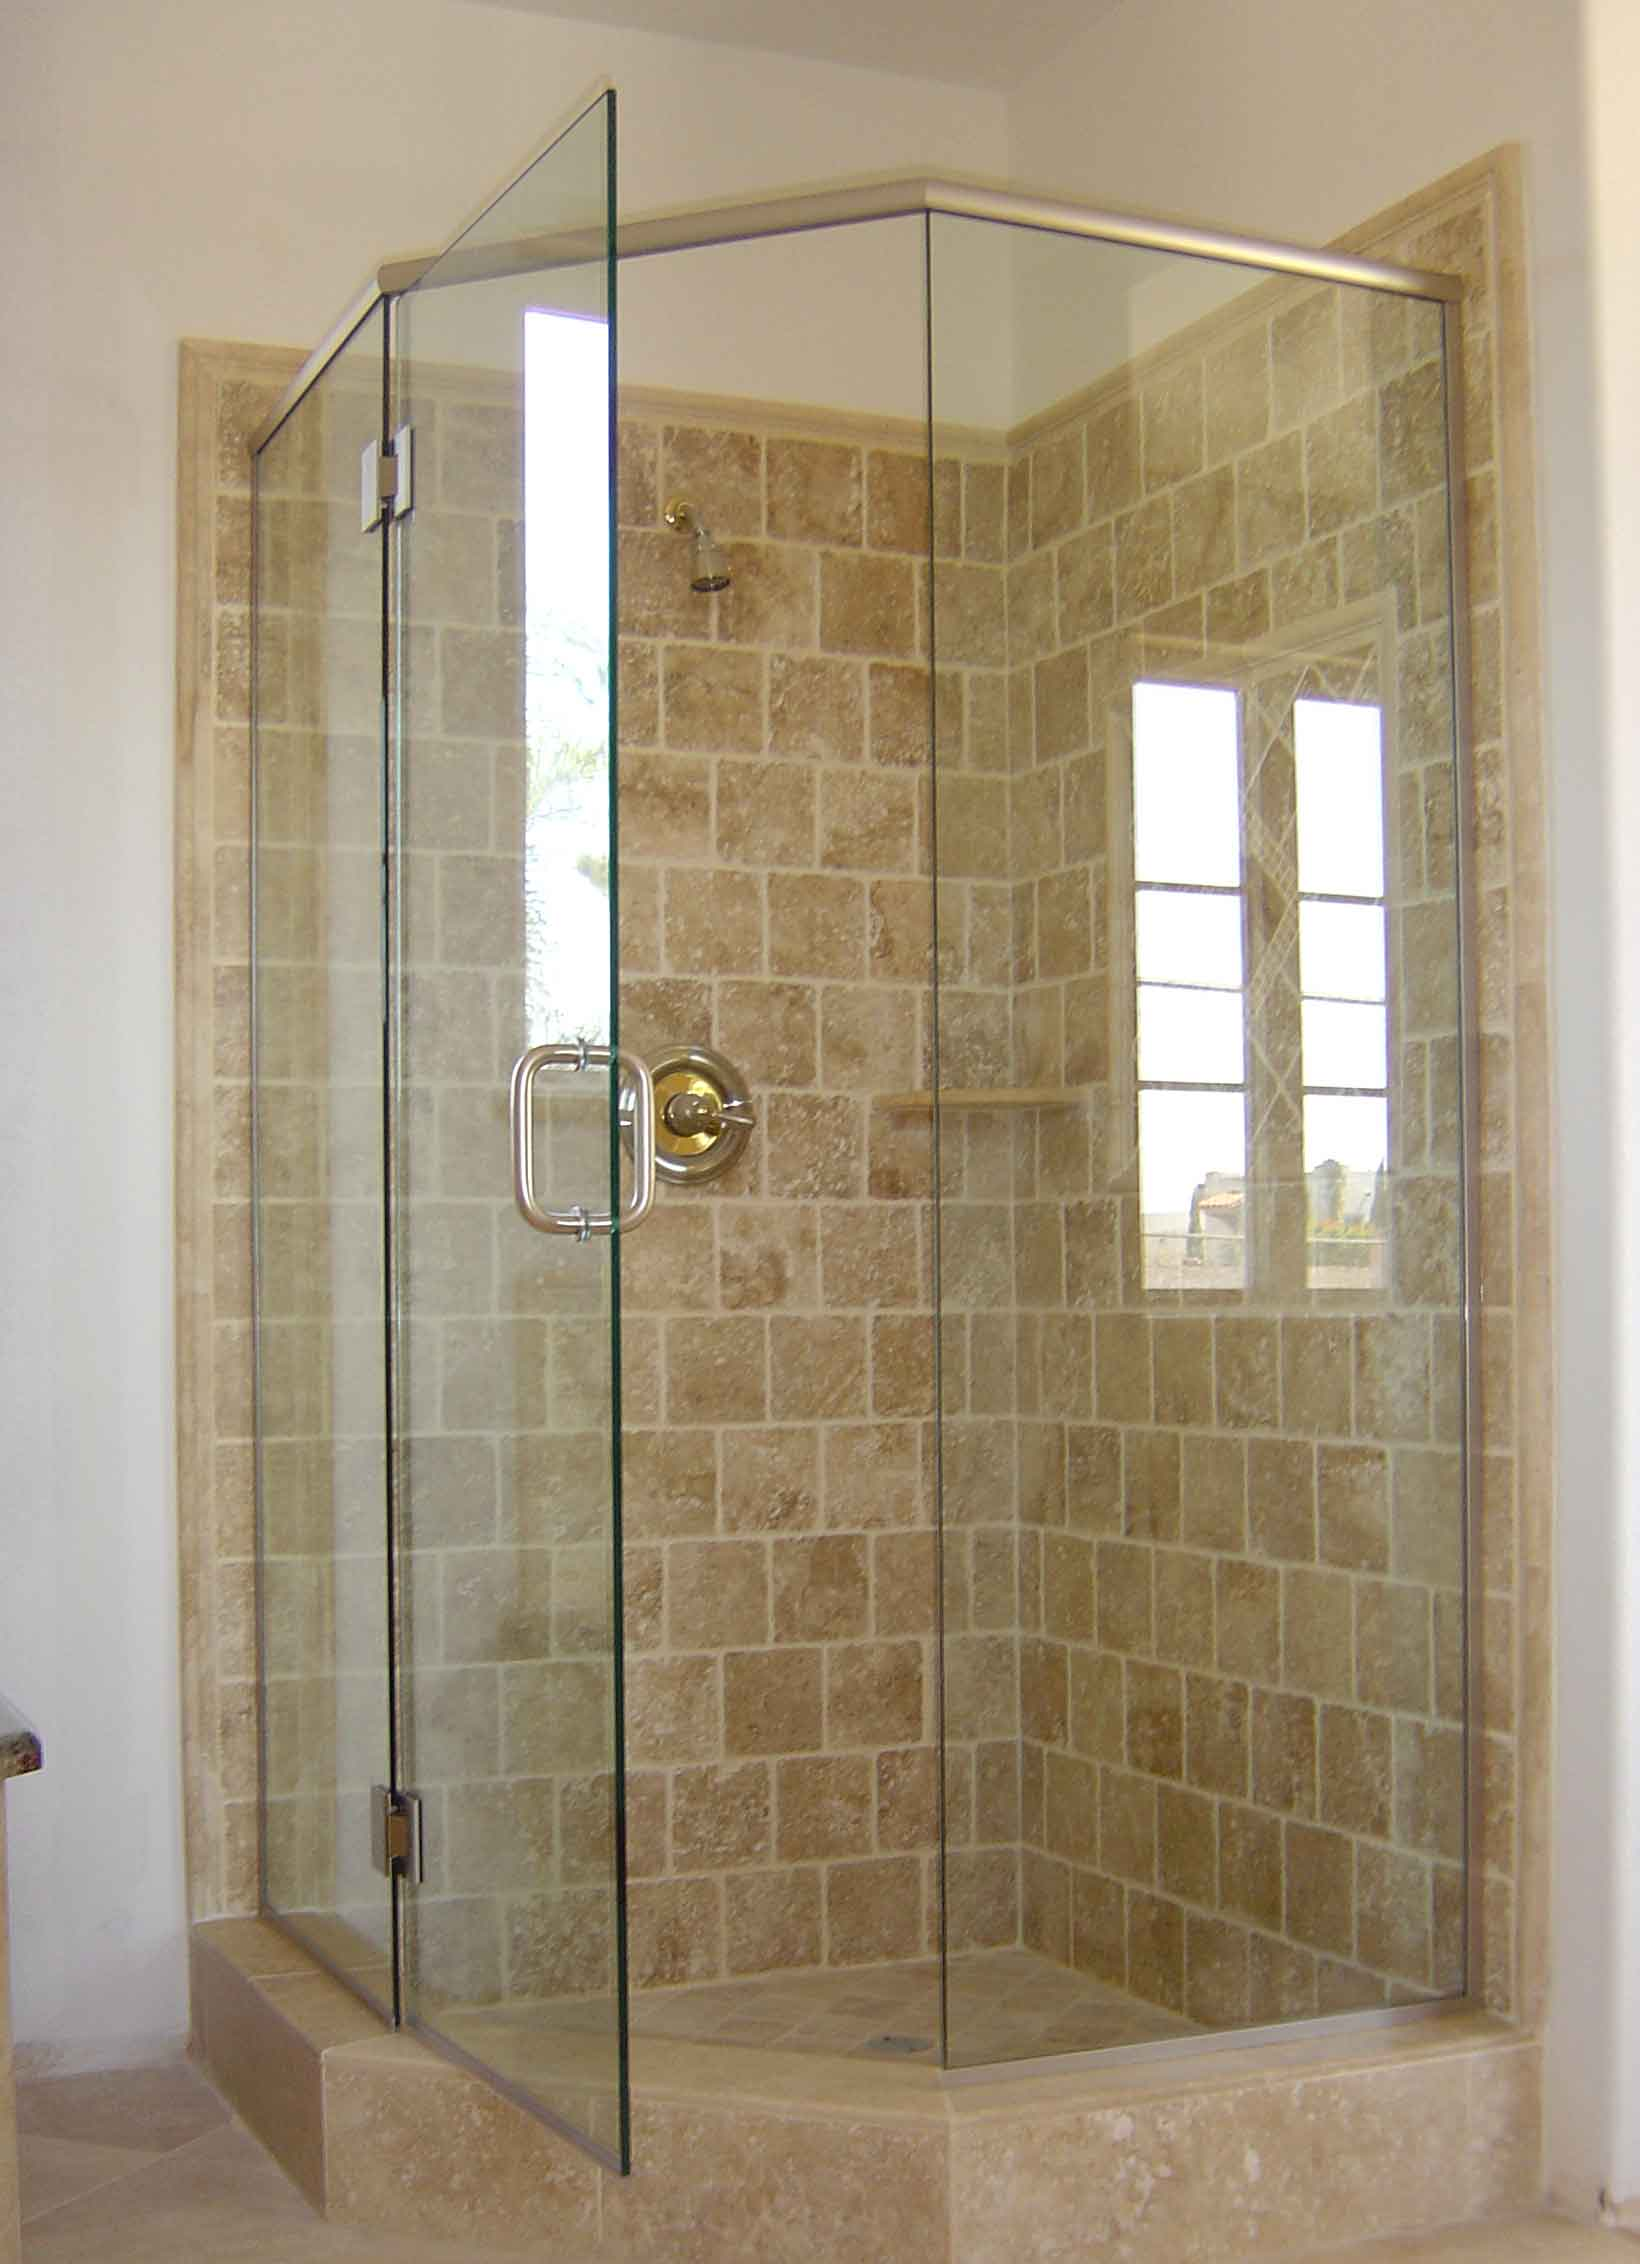 Shower Enclosure Thre Sided